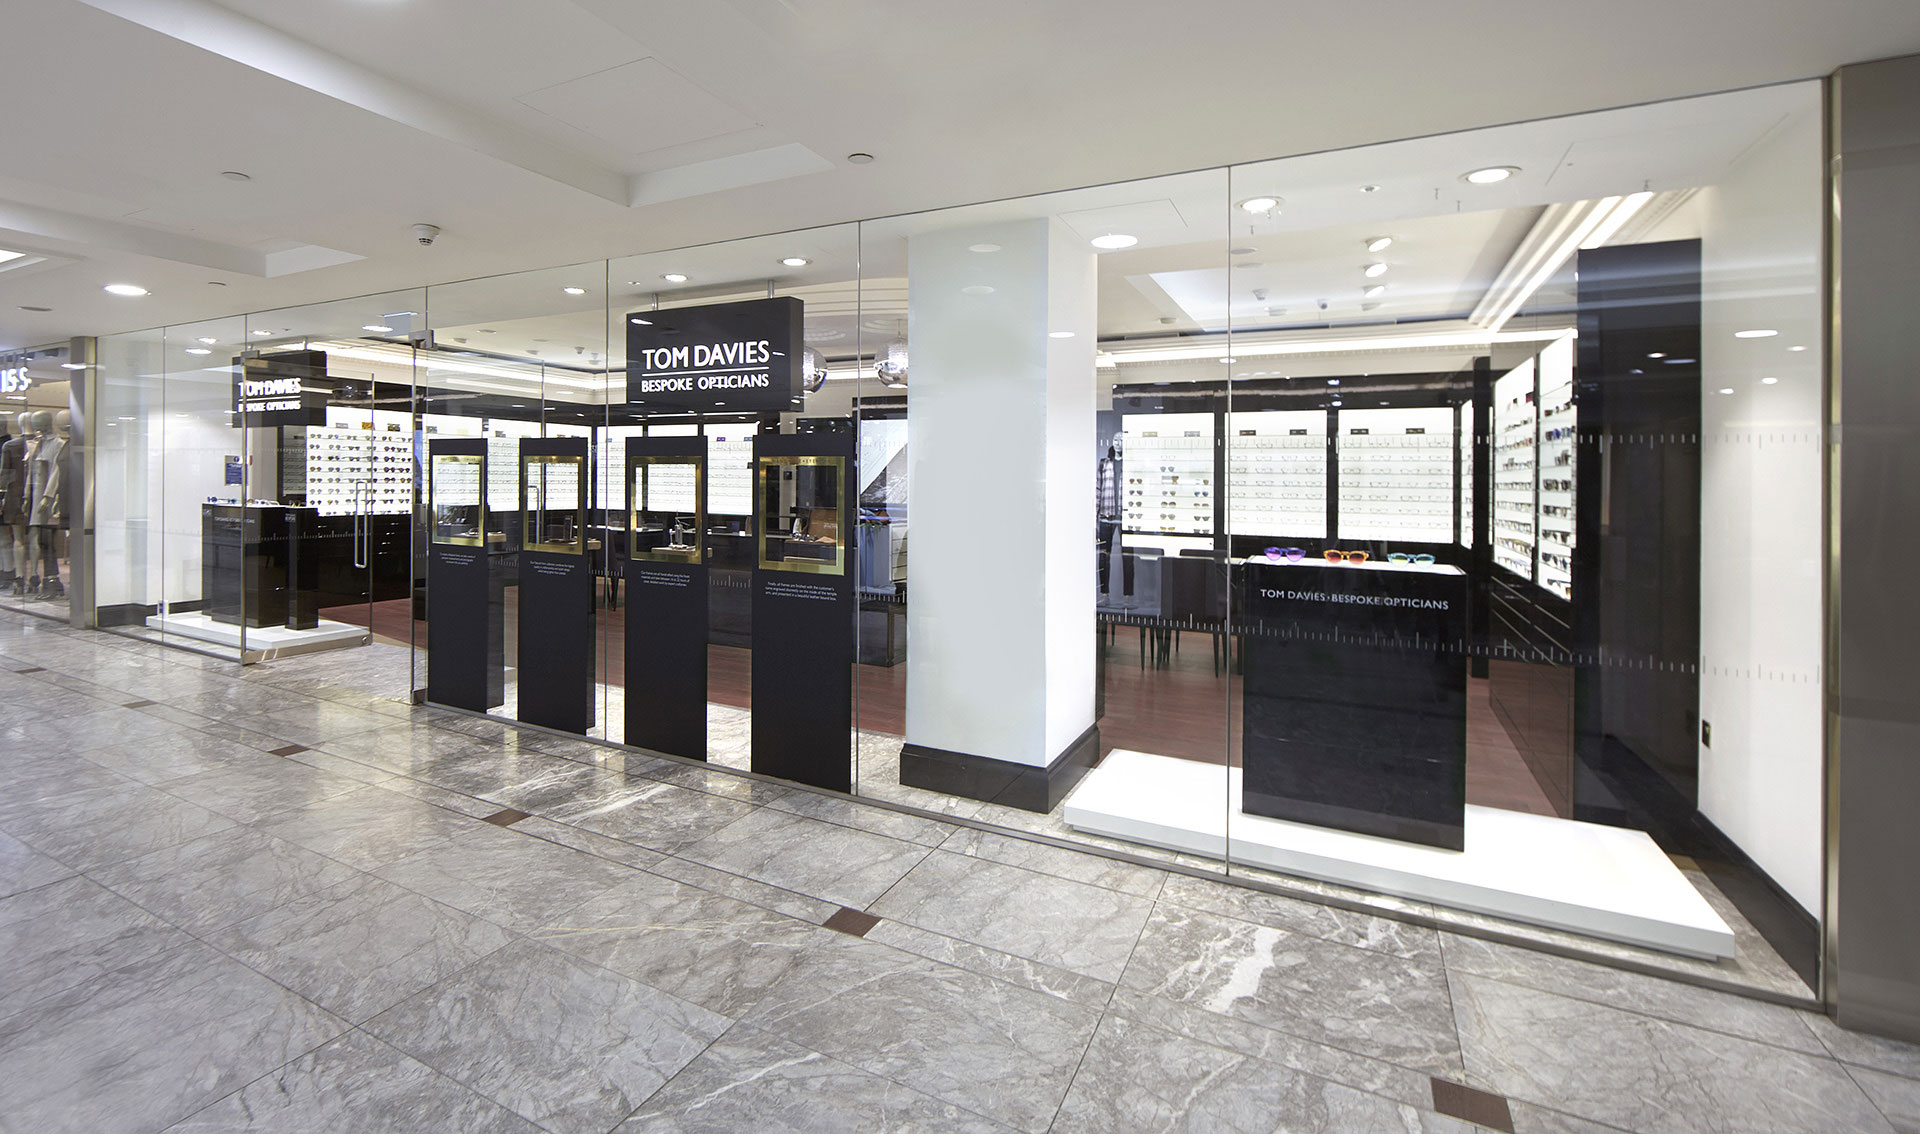 Tom Davies Bespoke Opticians in Canary Wharf